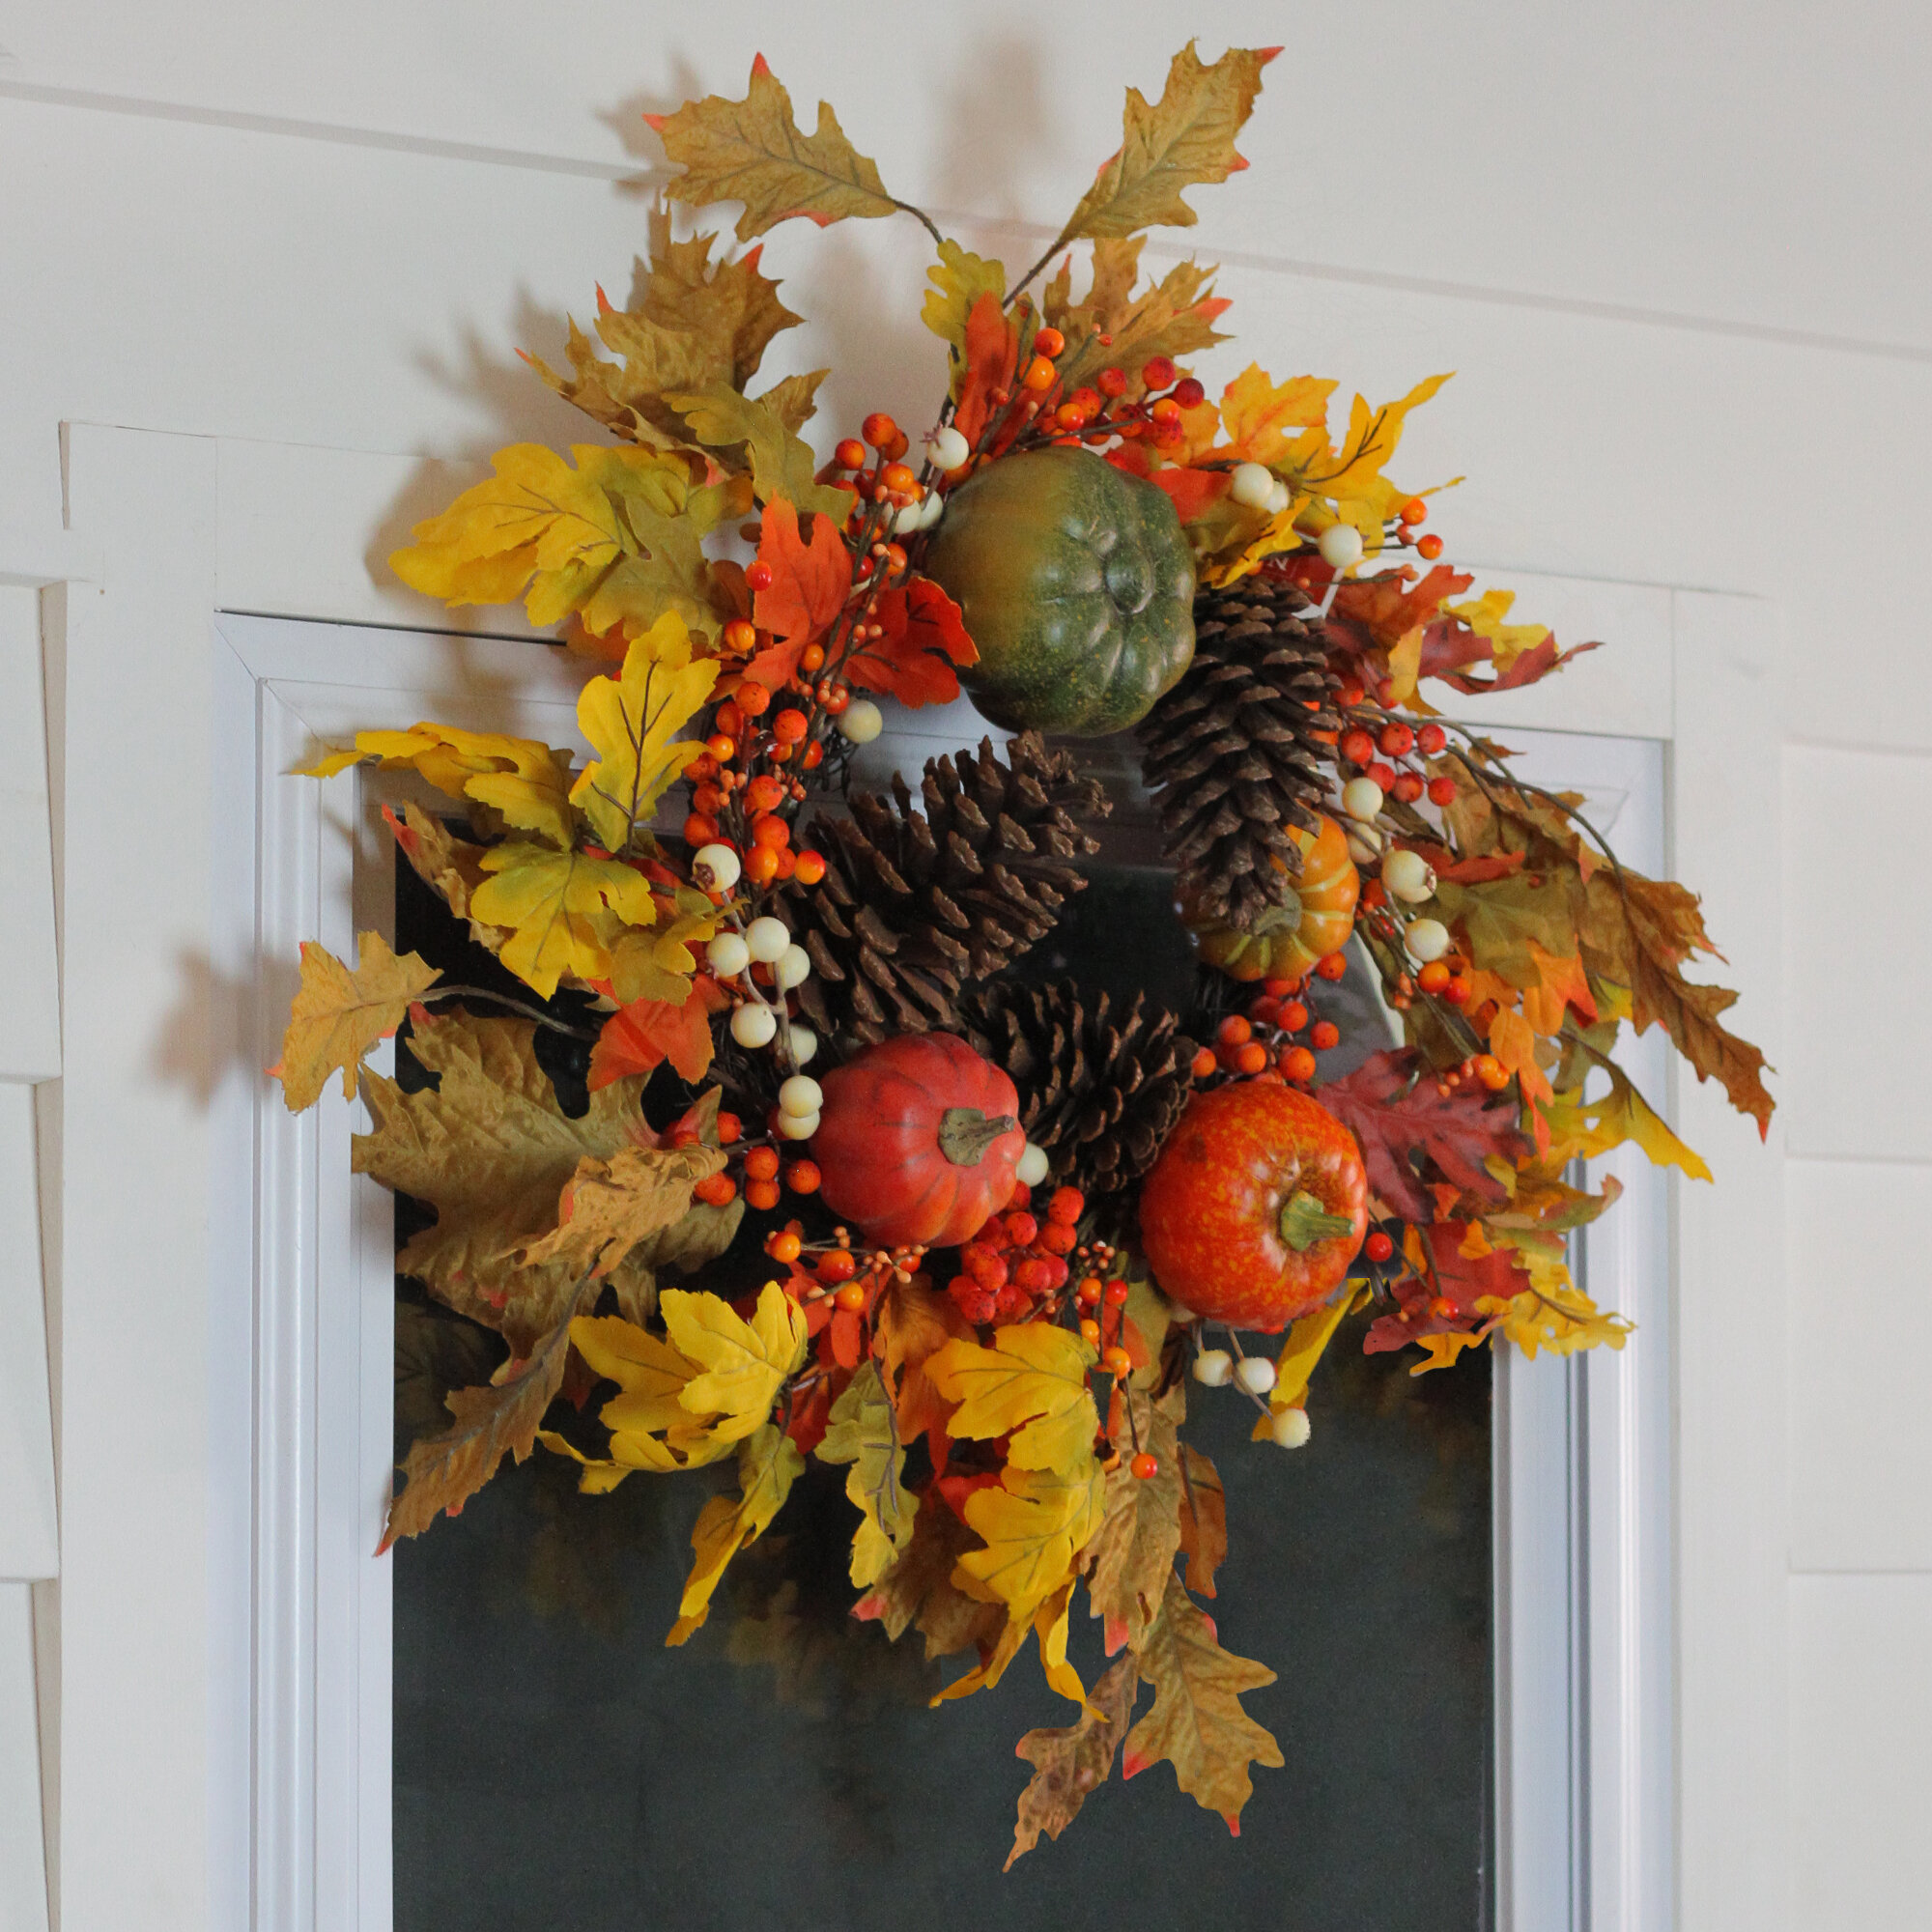 Artificial Plants Flowers 18 Artificial Wreath Autumn Leaves Ynylchmx Fall Wreaths For Front Door Garland For Hanging Window Wall Decorations And Pinecones Modern Farmhouse Wreath Eucalyptus Home Kitchen Startsolar Com Au